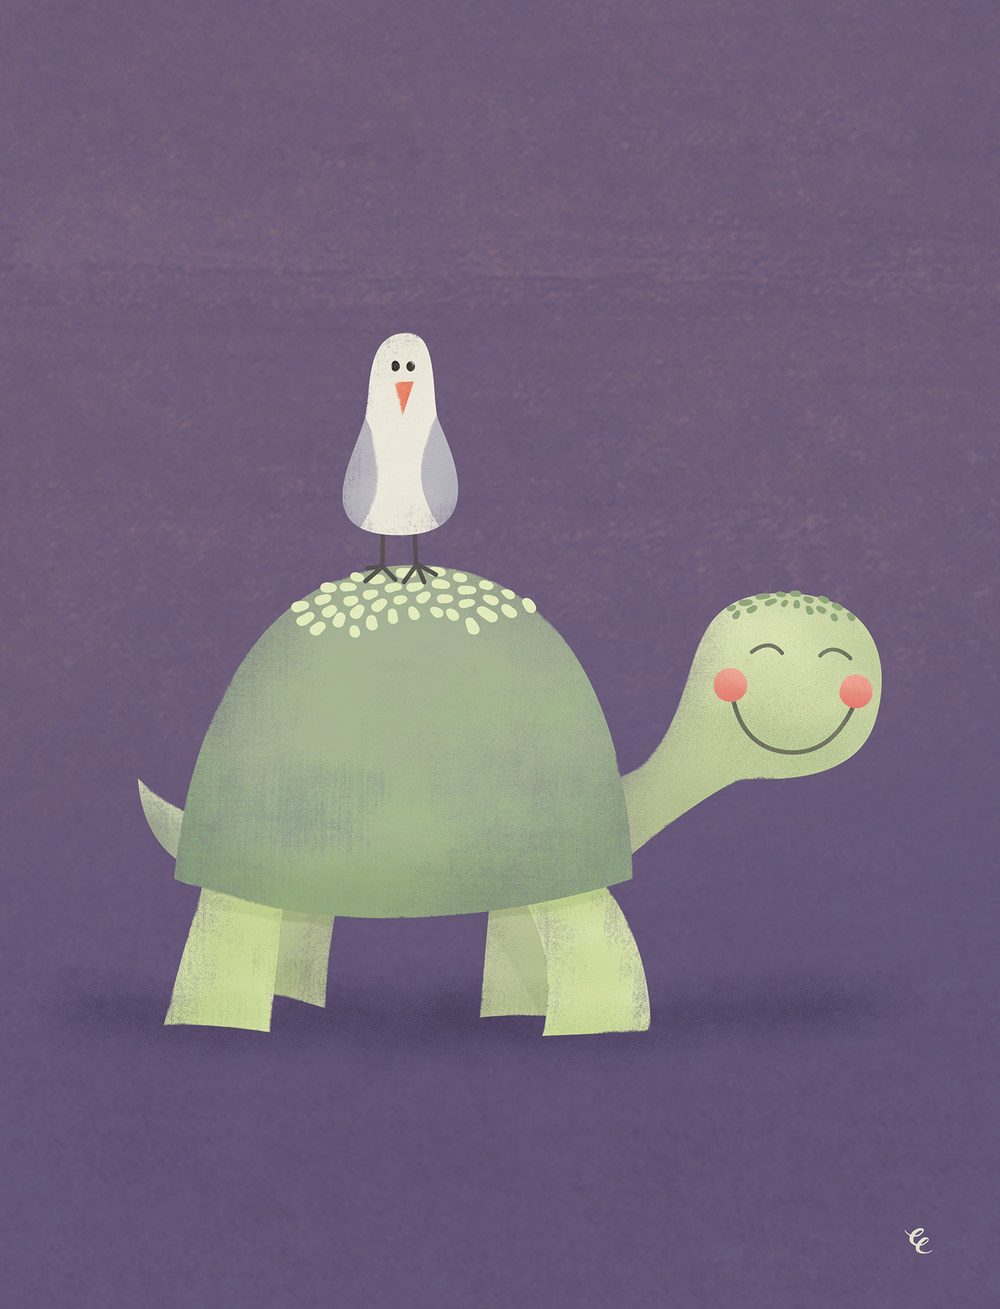 WEEK 9: a Friendly Turtle